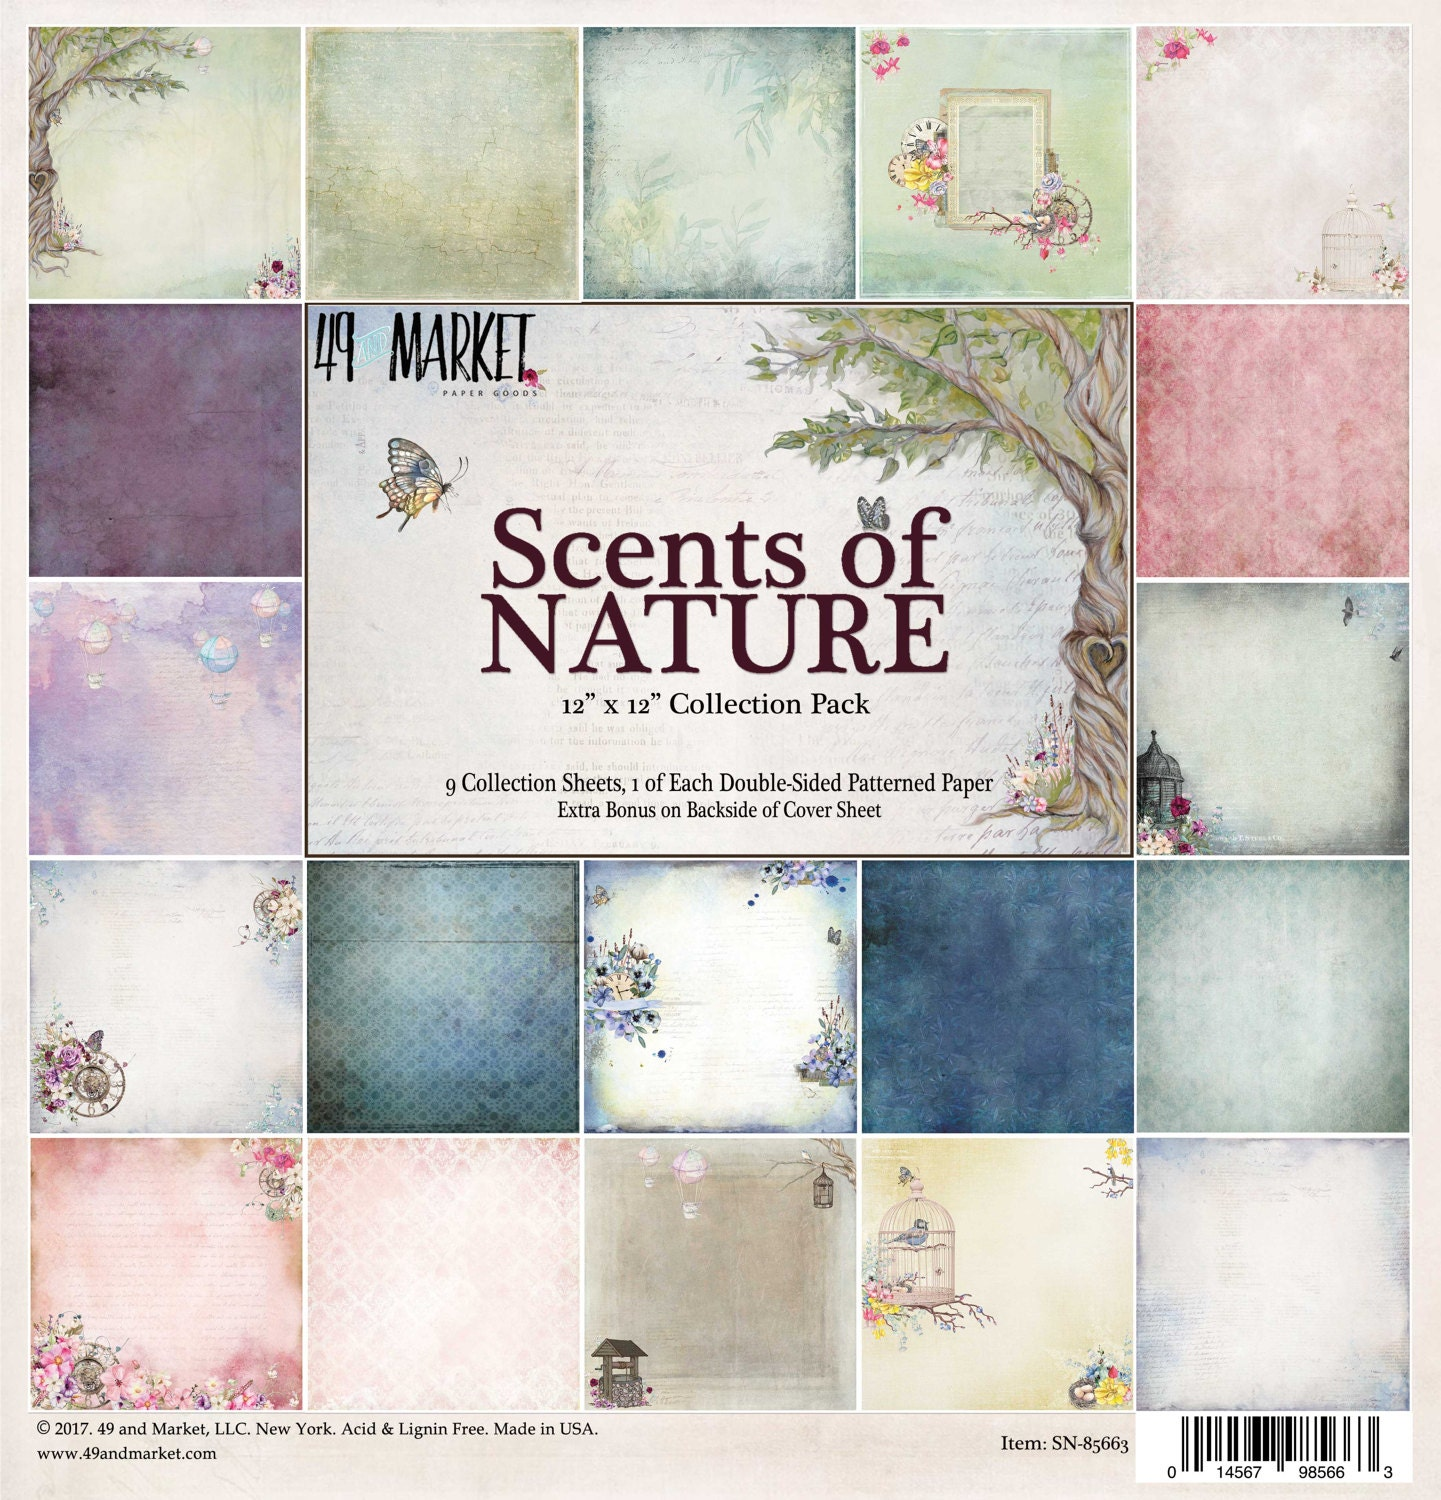 e8def95922f03 Description. 49 and Market SCENTS OF NATURE 12X12 Collection Pack